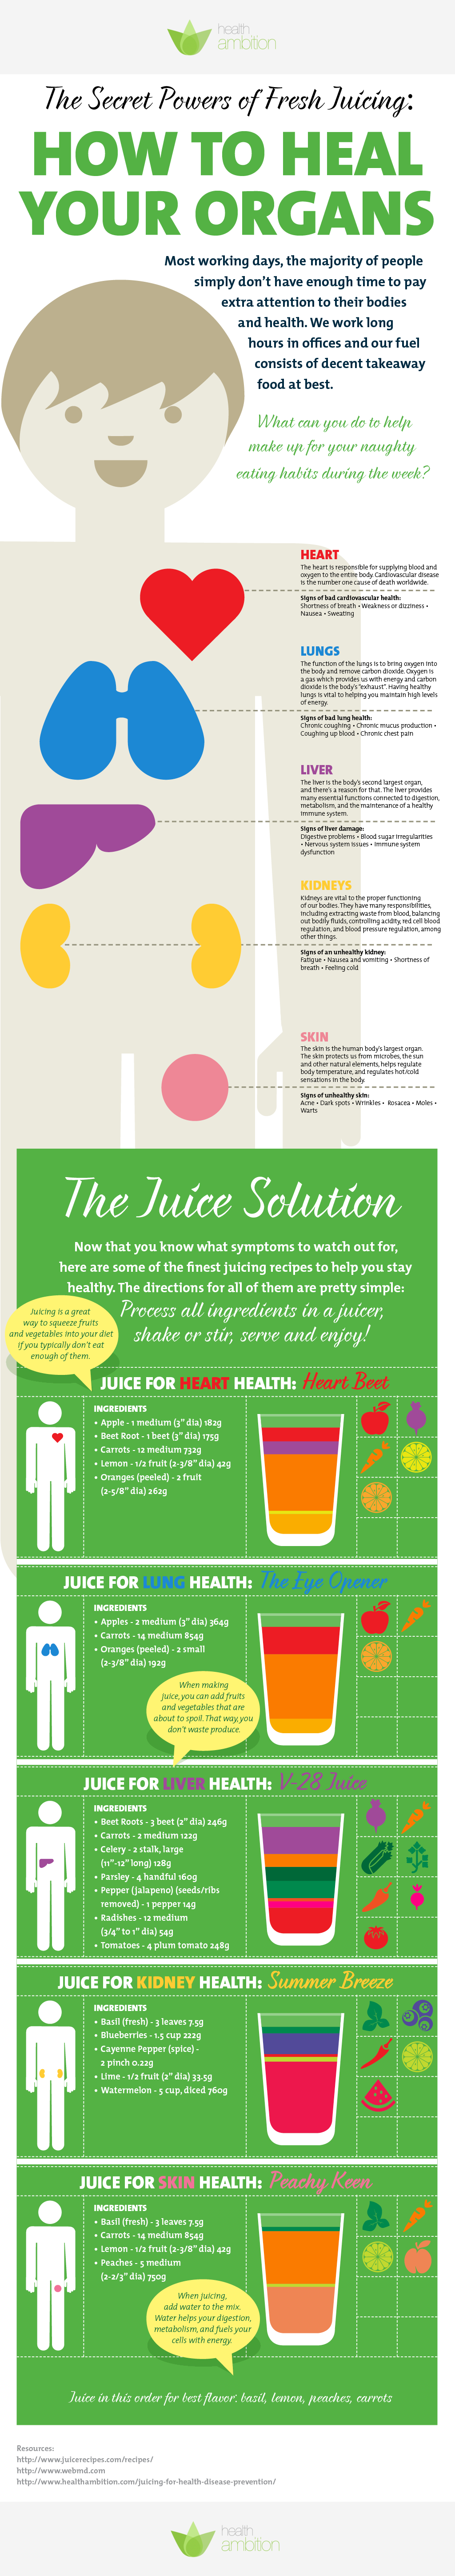 How to Heal Your Organs with the Secret Powers of Fruits & Vegetables (Fresh Juice) | David Kovacs for Elephant Journal |